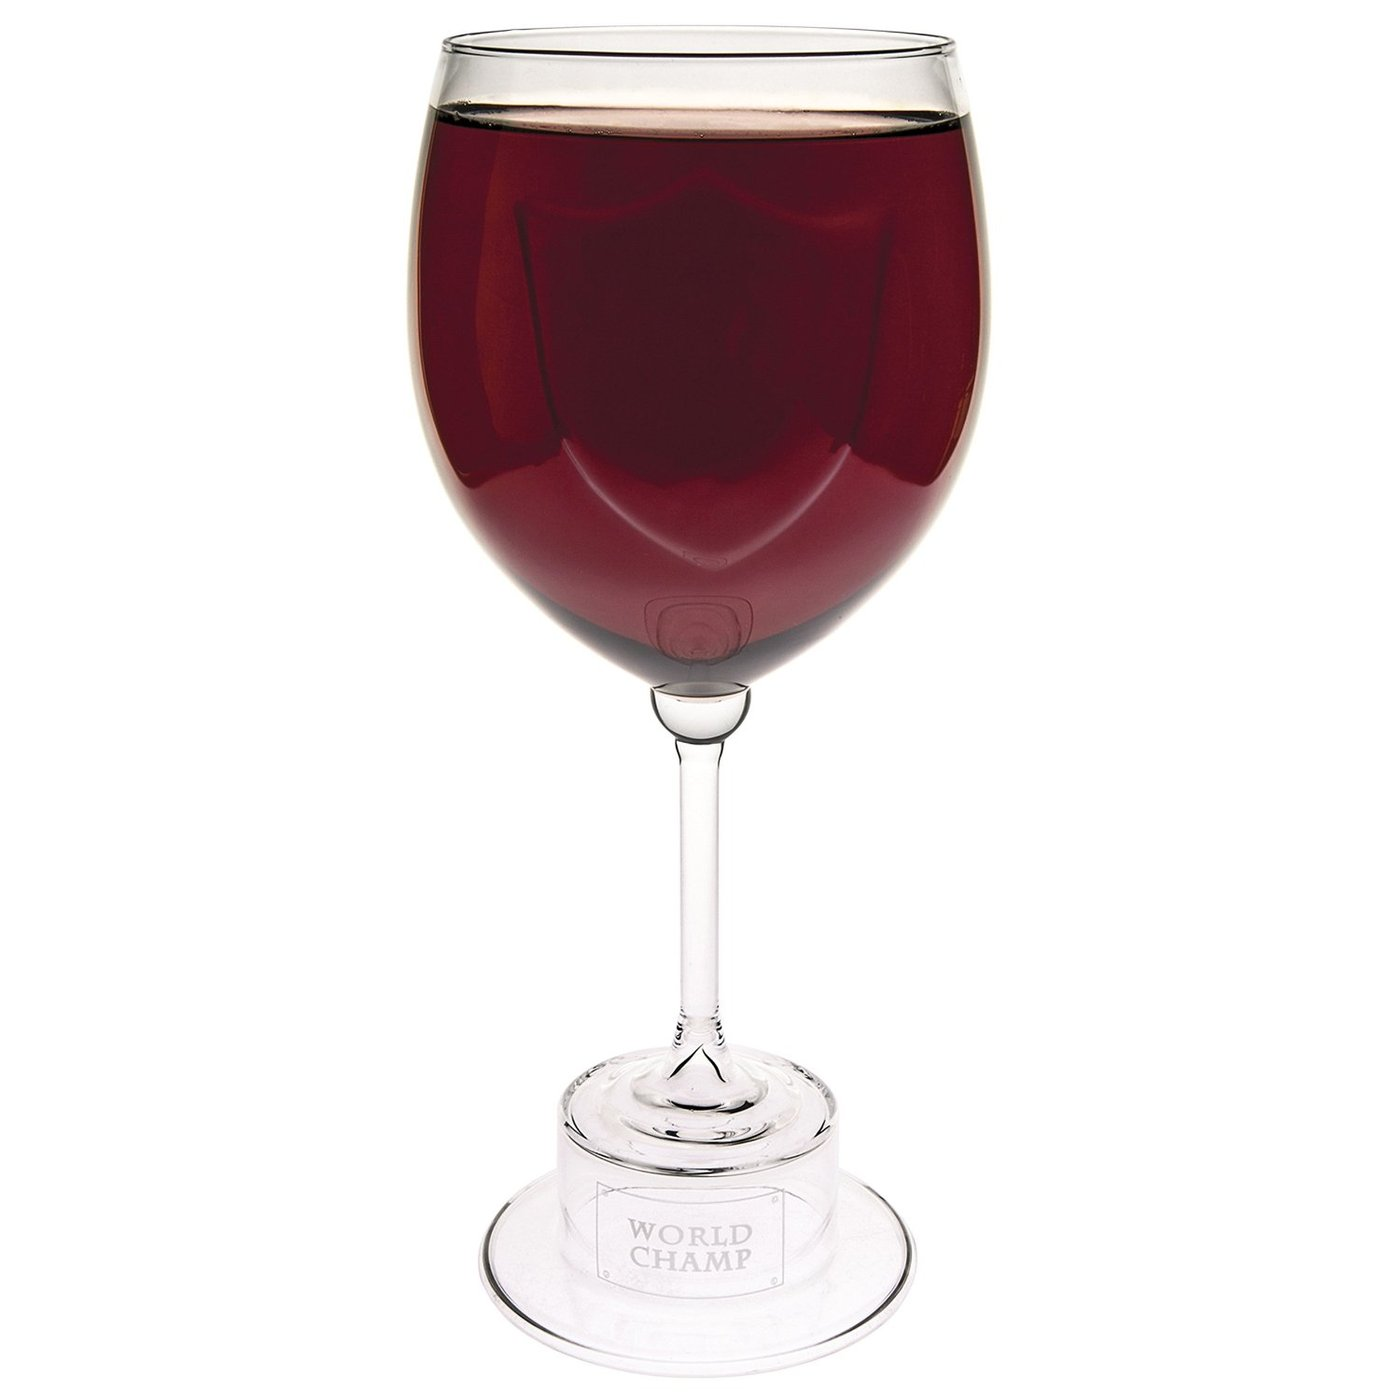 Fun Holiday Gag Gift The Wine Glass Of Champions On SALE